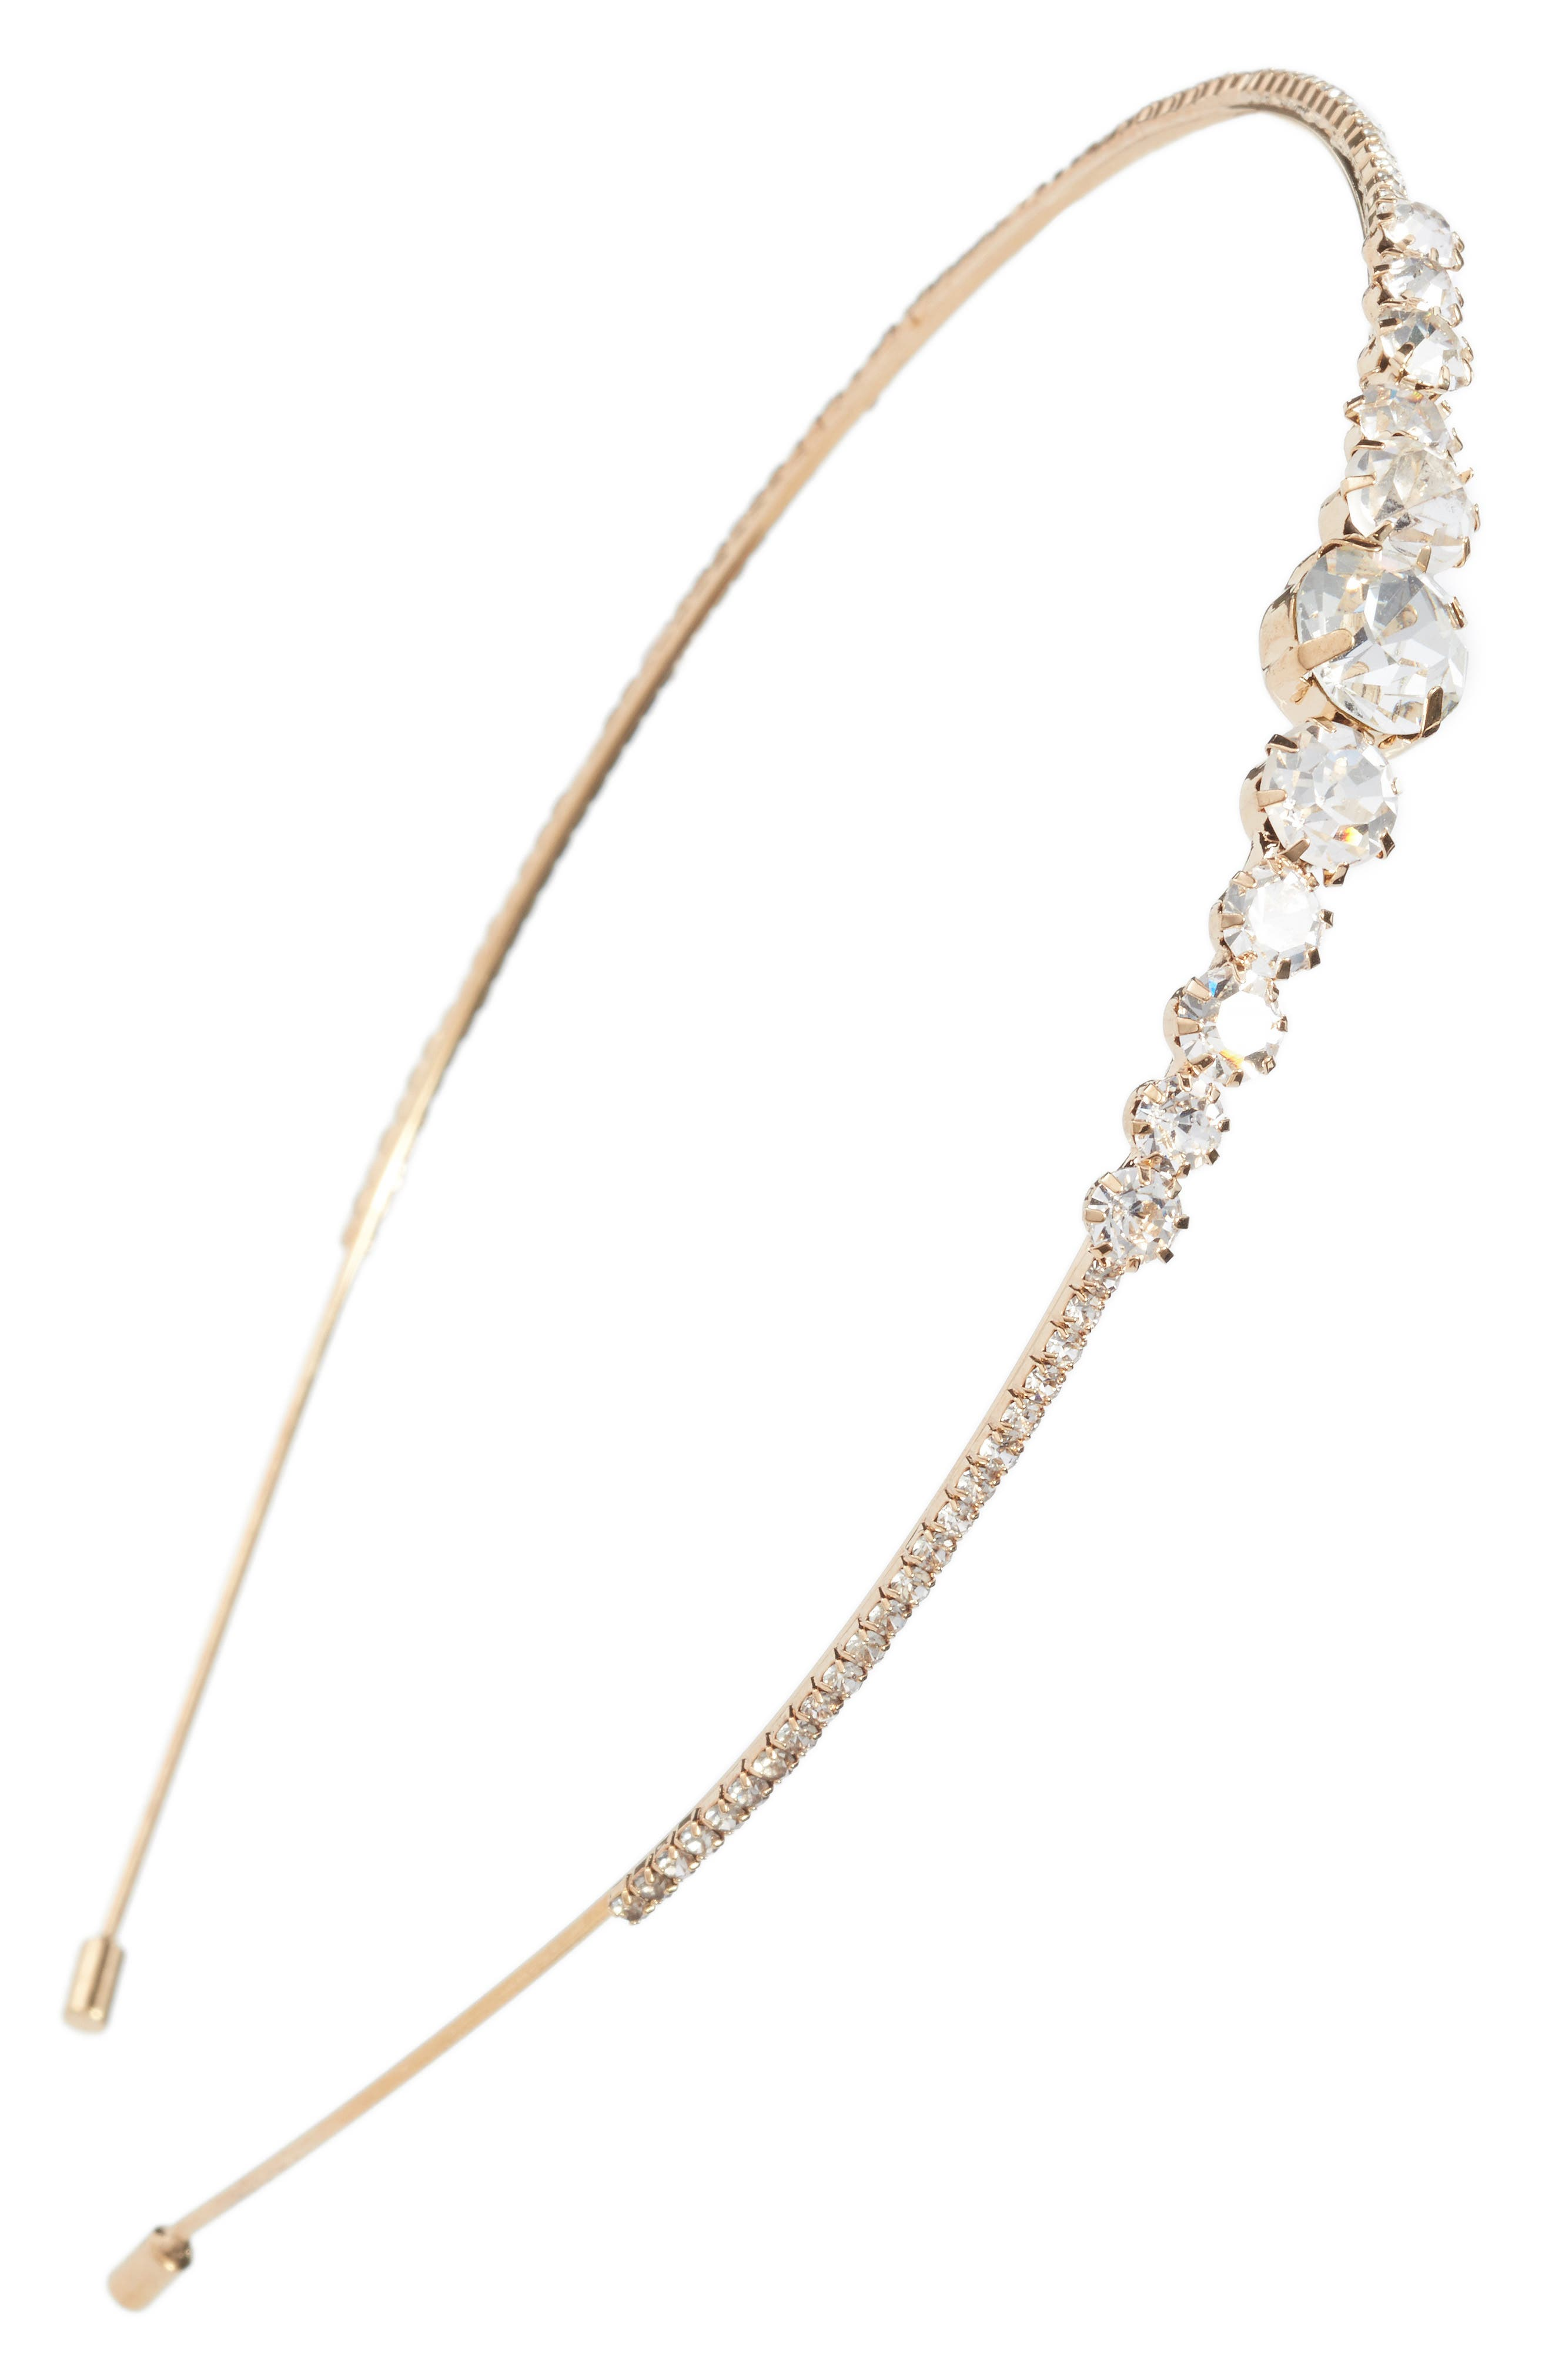 Crystal Embellished Headband,                             Main thumbnail 1, color,                             710